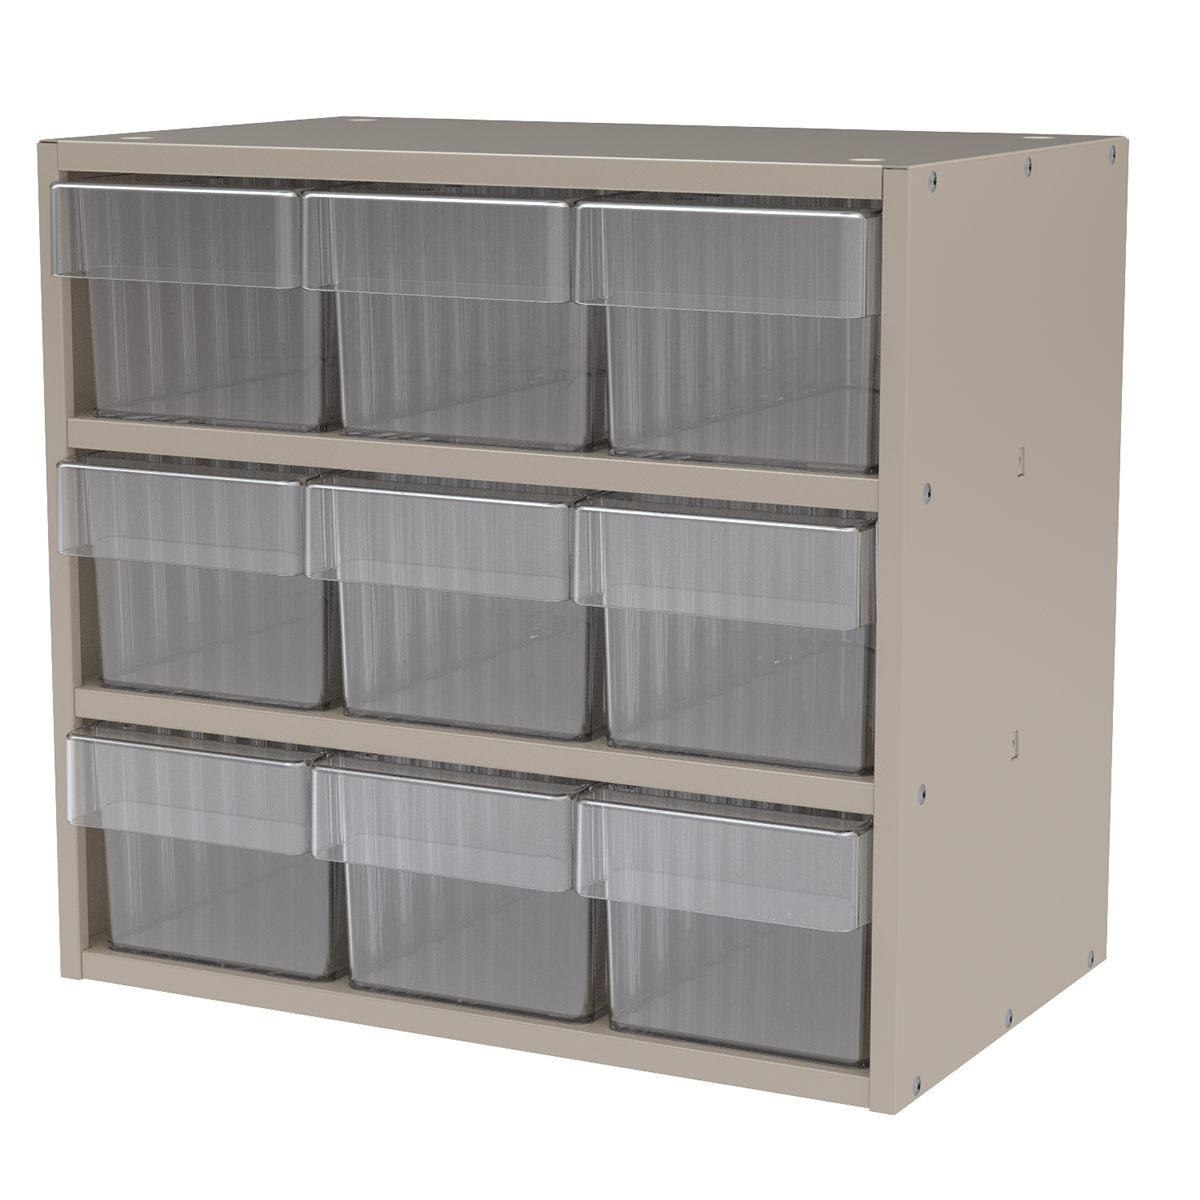 Item DISCONTINUED by Manufacturer.  Modular Cabinet, 18x11x16, 9 Drawers, Putty/Clear (AD1811P62CRY).  This item sold in carton quantities of 1.